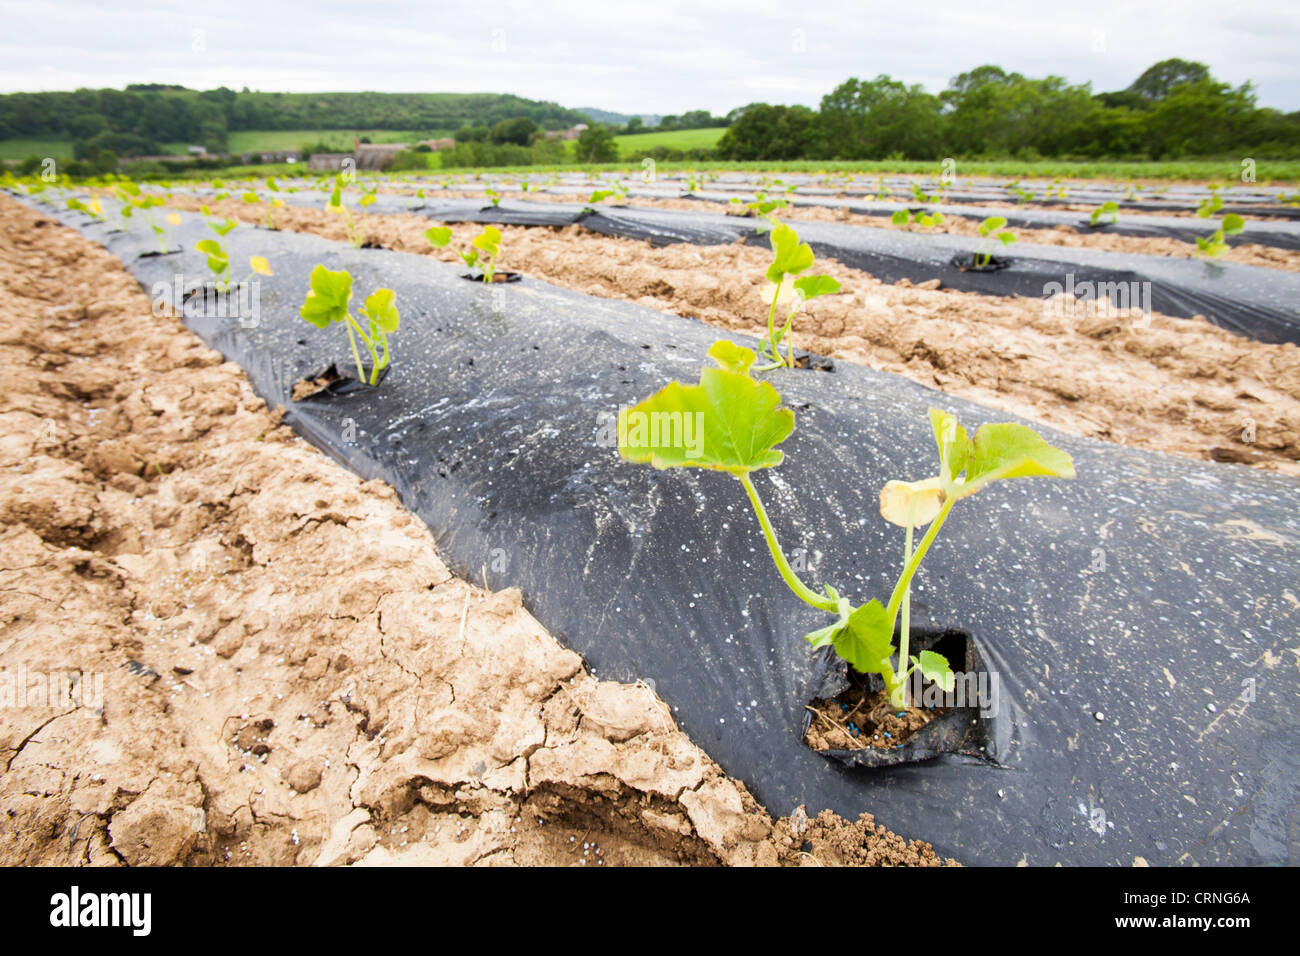 Courgettes growing at Washingpool farm in Bridport, Dorset. - Stock Image